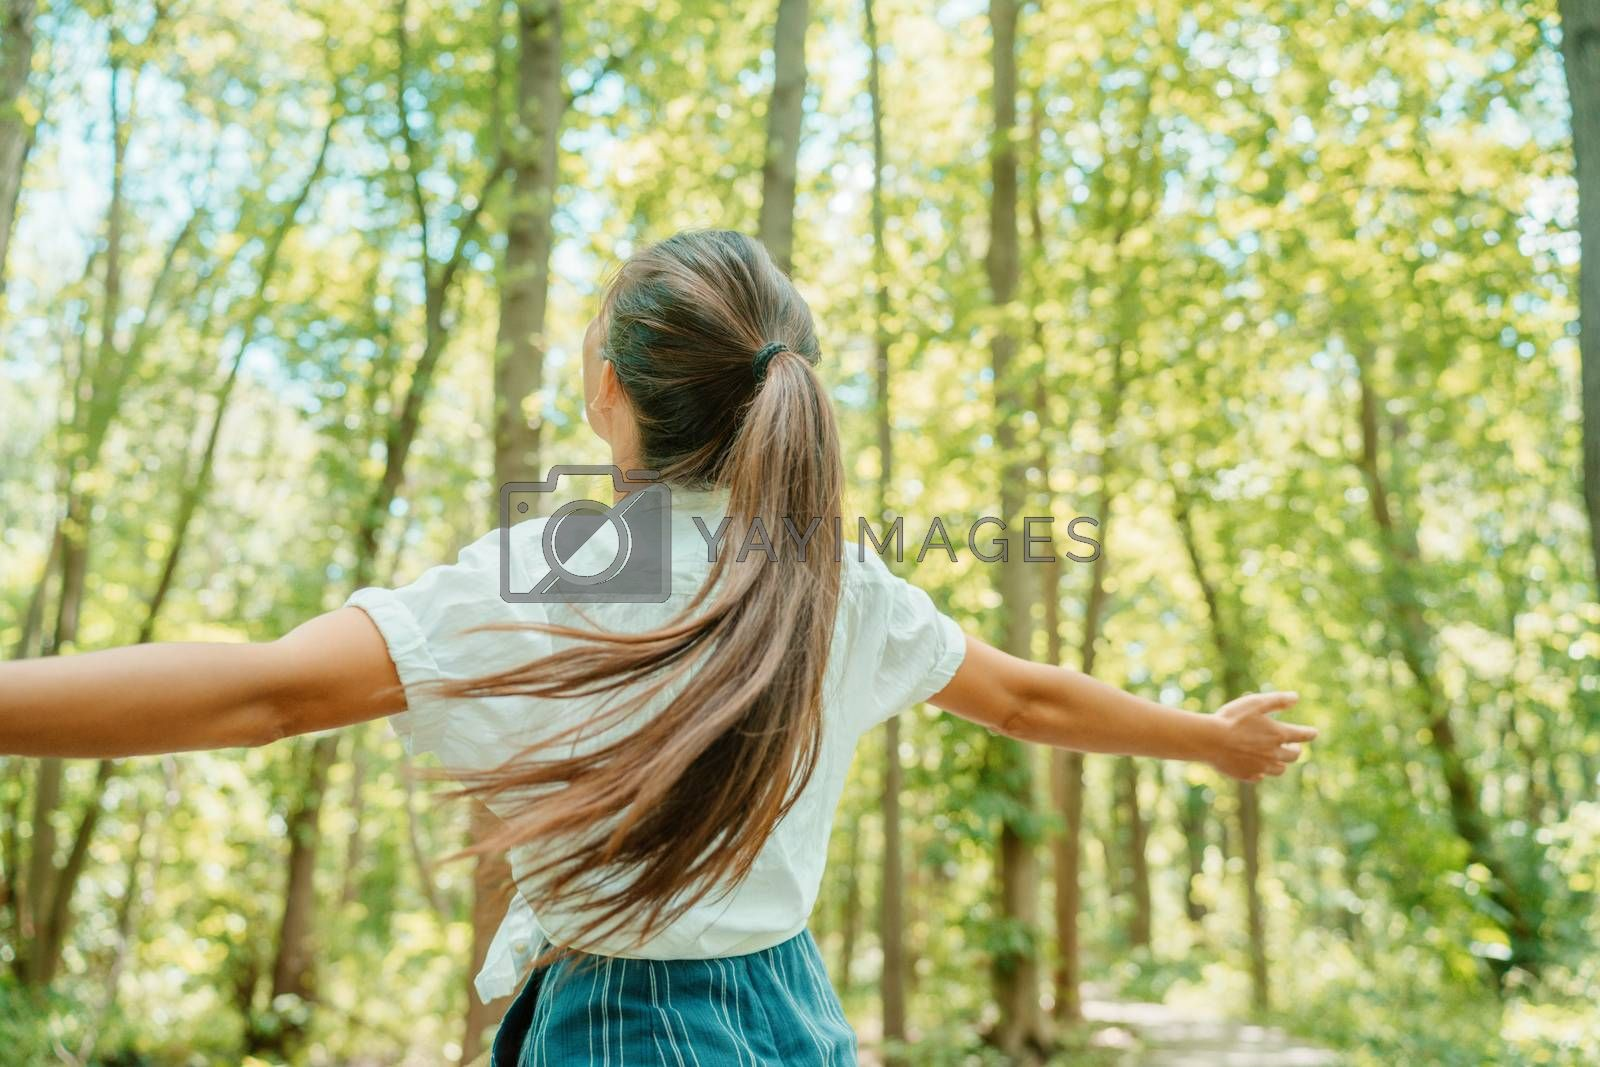 Happy woman in forest with open arms from behind breathing clean air. Environment, no pollution healthy natural living lifestyle. Free spirit in the woods.